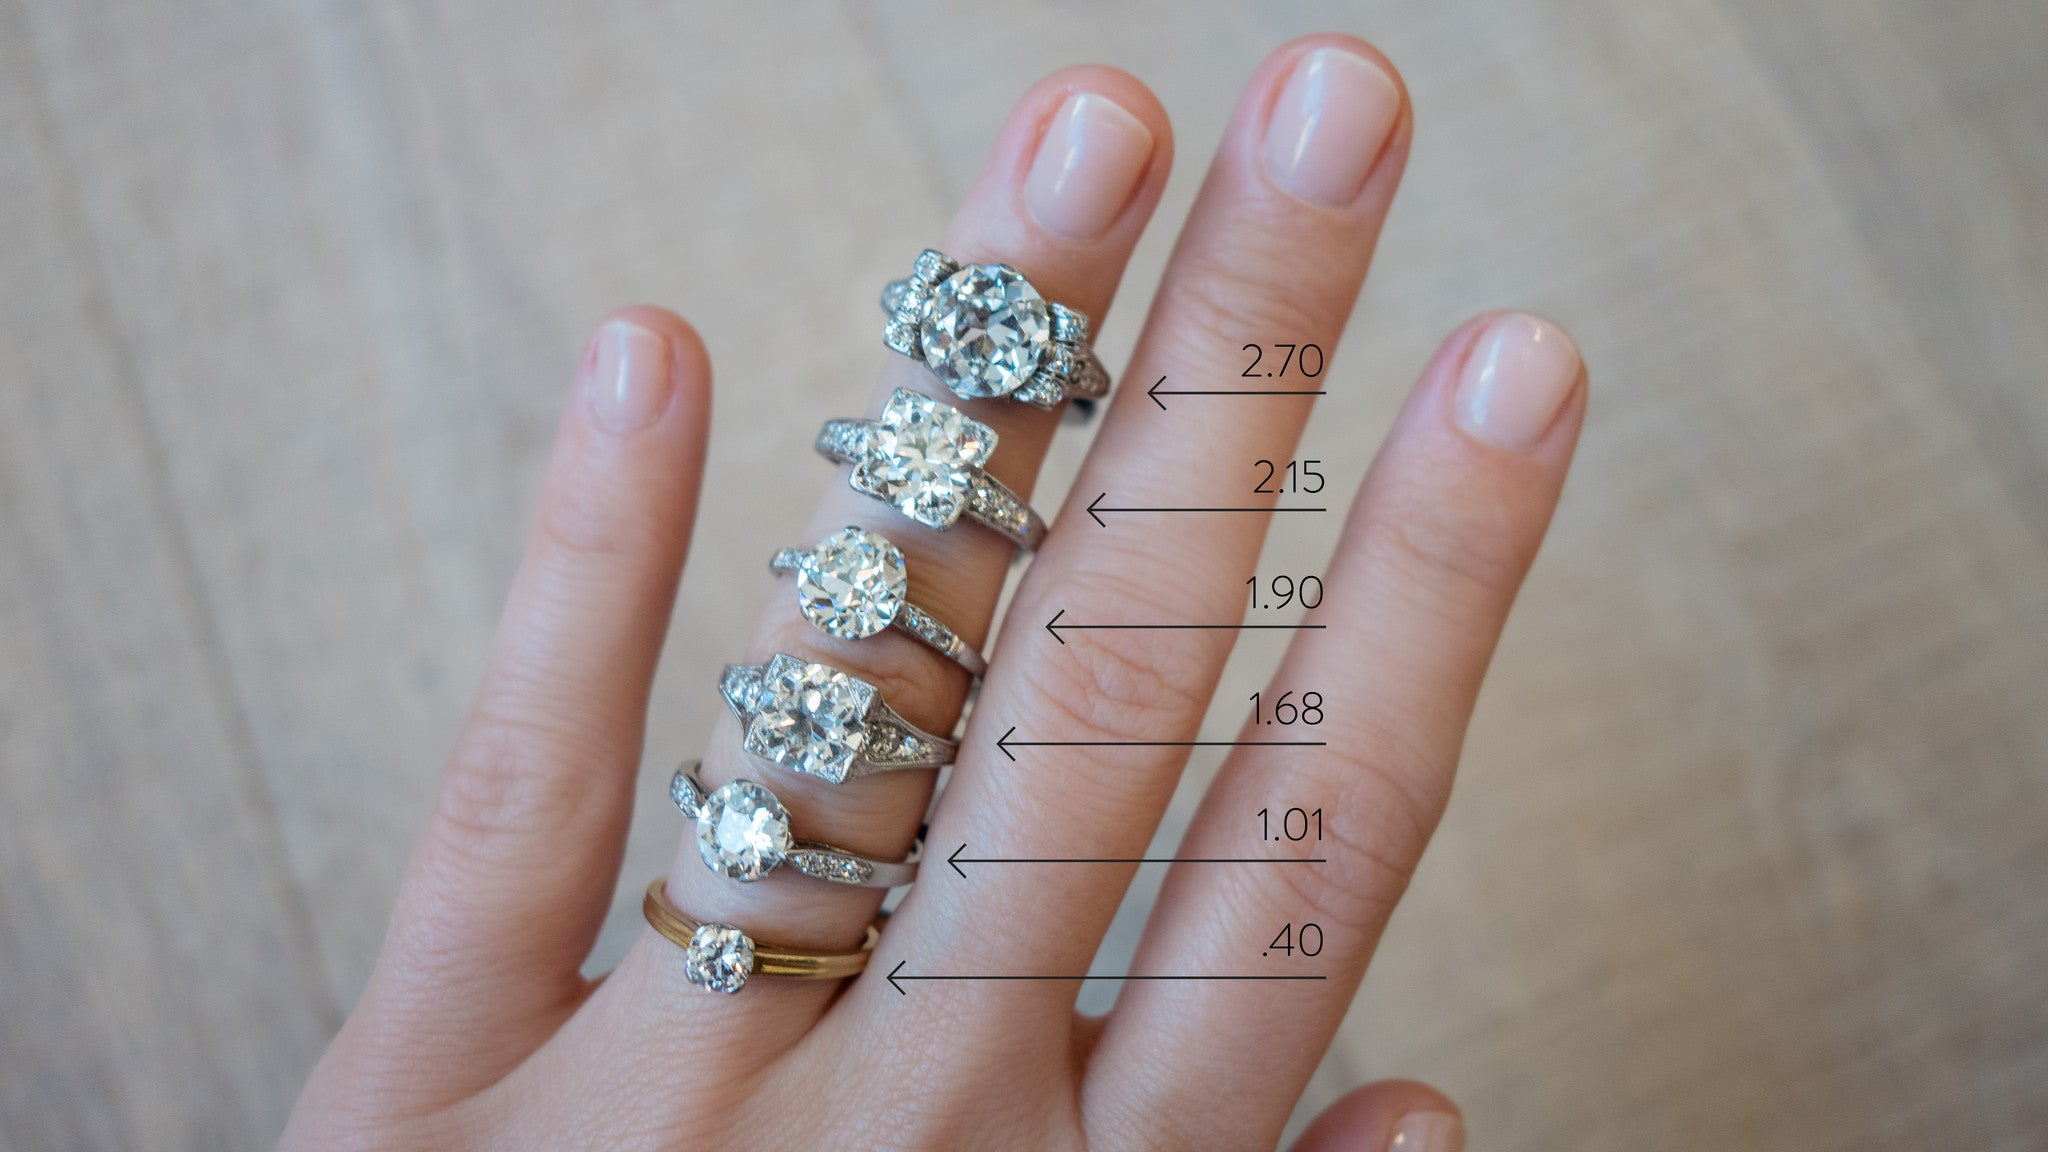 Diamond size chart on hand erstwhile jewelry diamond size chart on hand geenschuldenfo Gallery